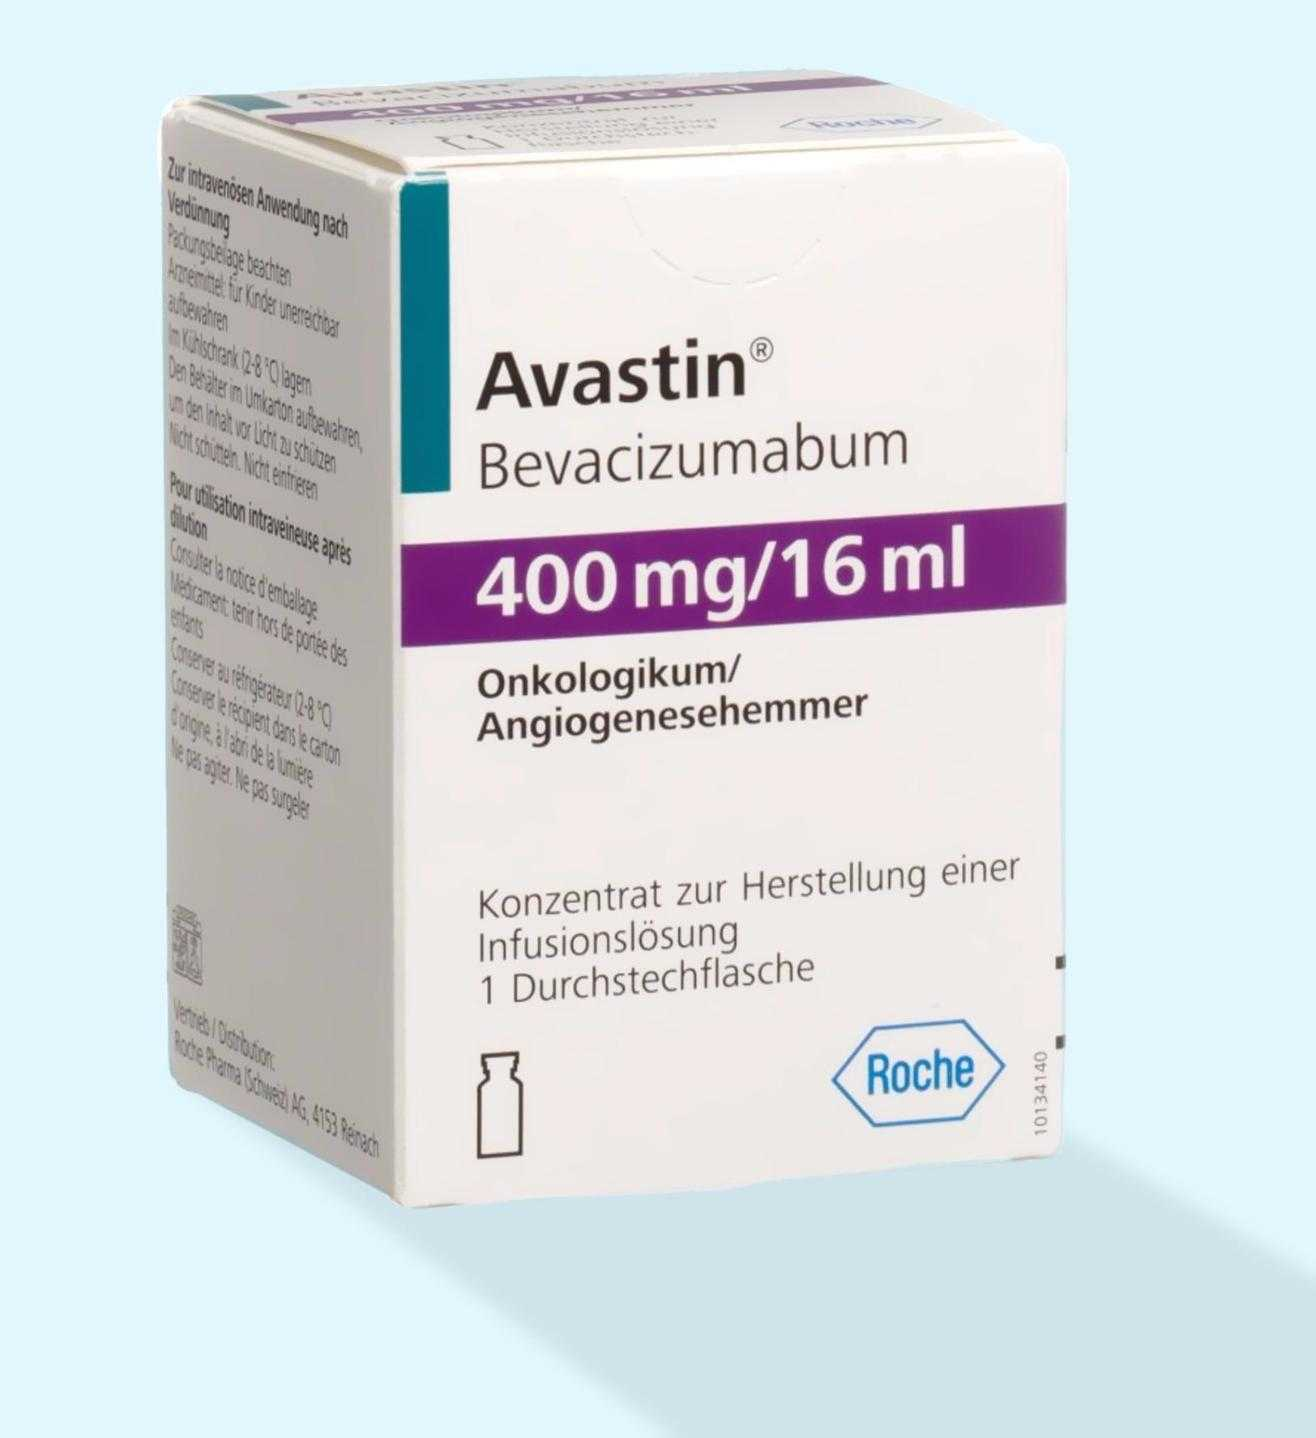 Avastin (bevacizumab) concentrate for infusions 400 mg/16 ml. №1 vial